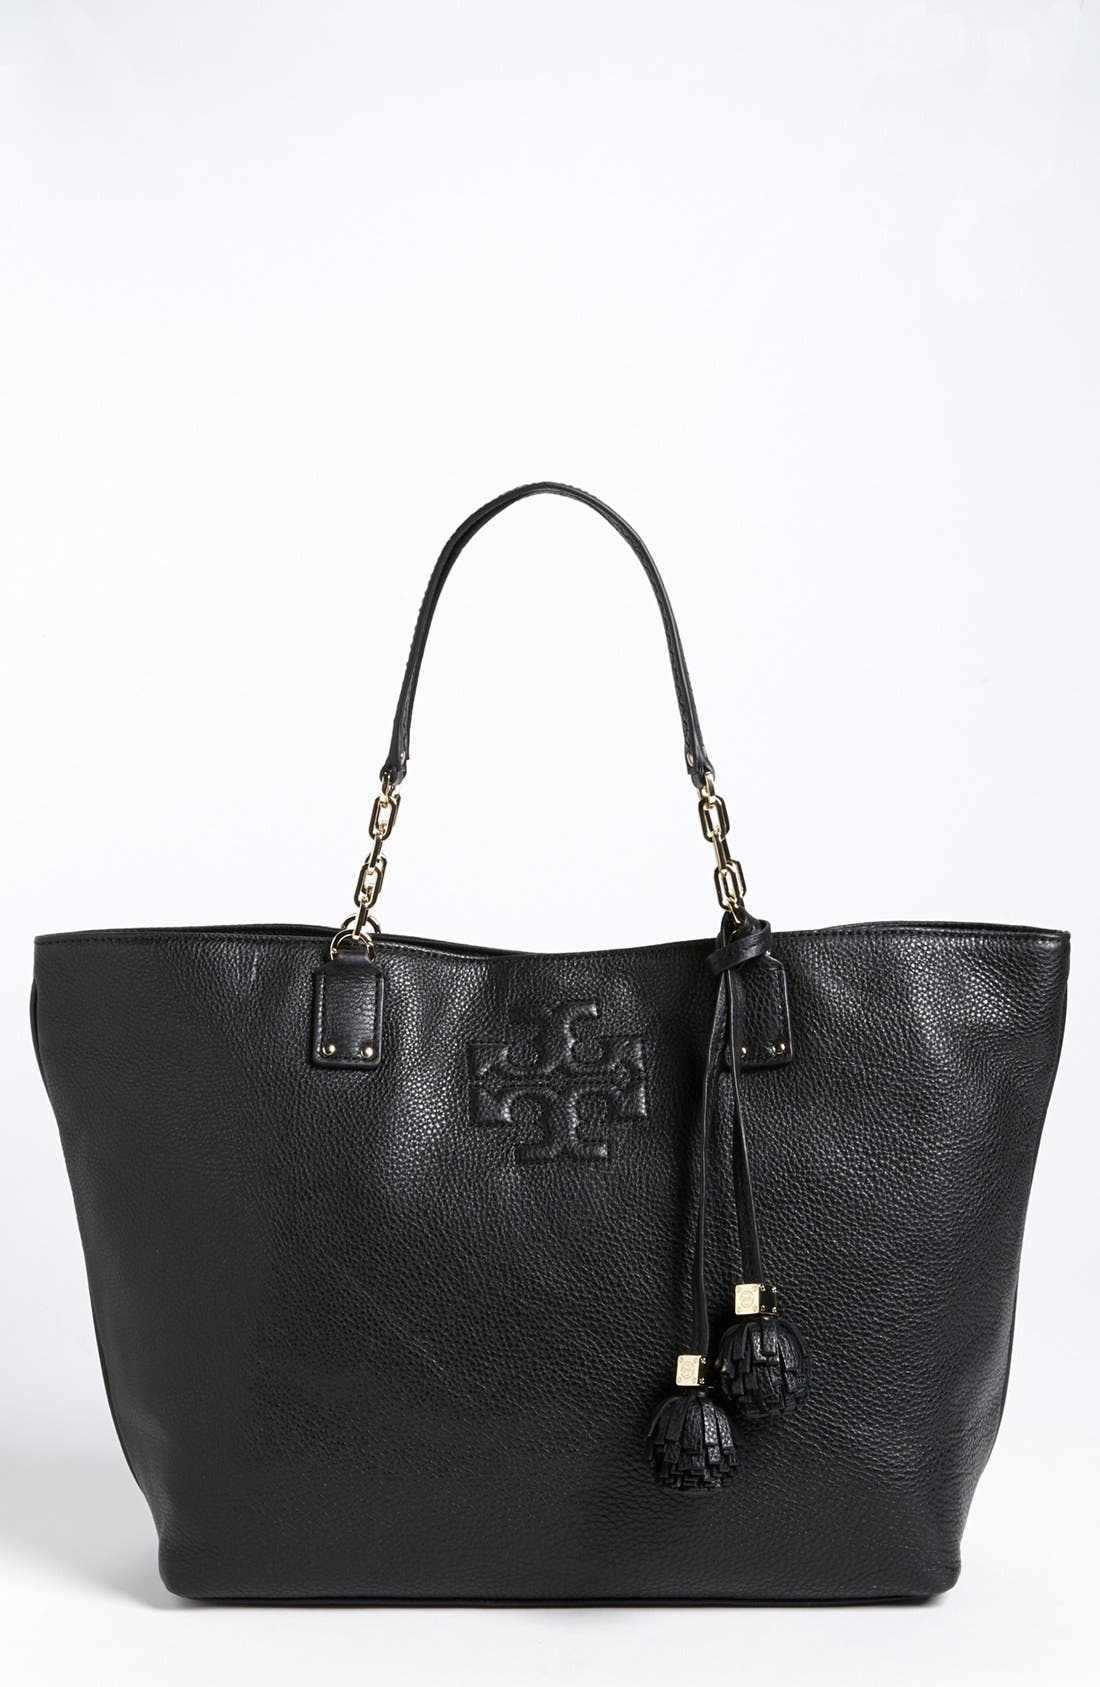 Alternate Image 1 Selected - Tory Burch 'Thea - Large' Leather Tote